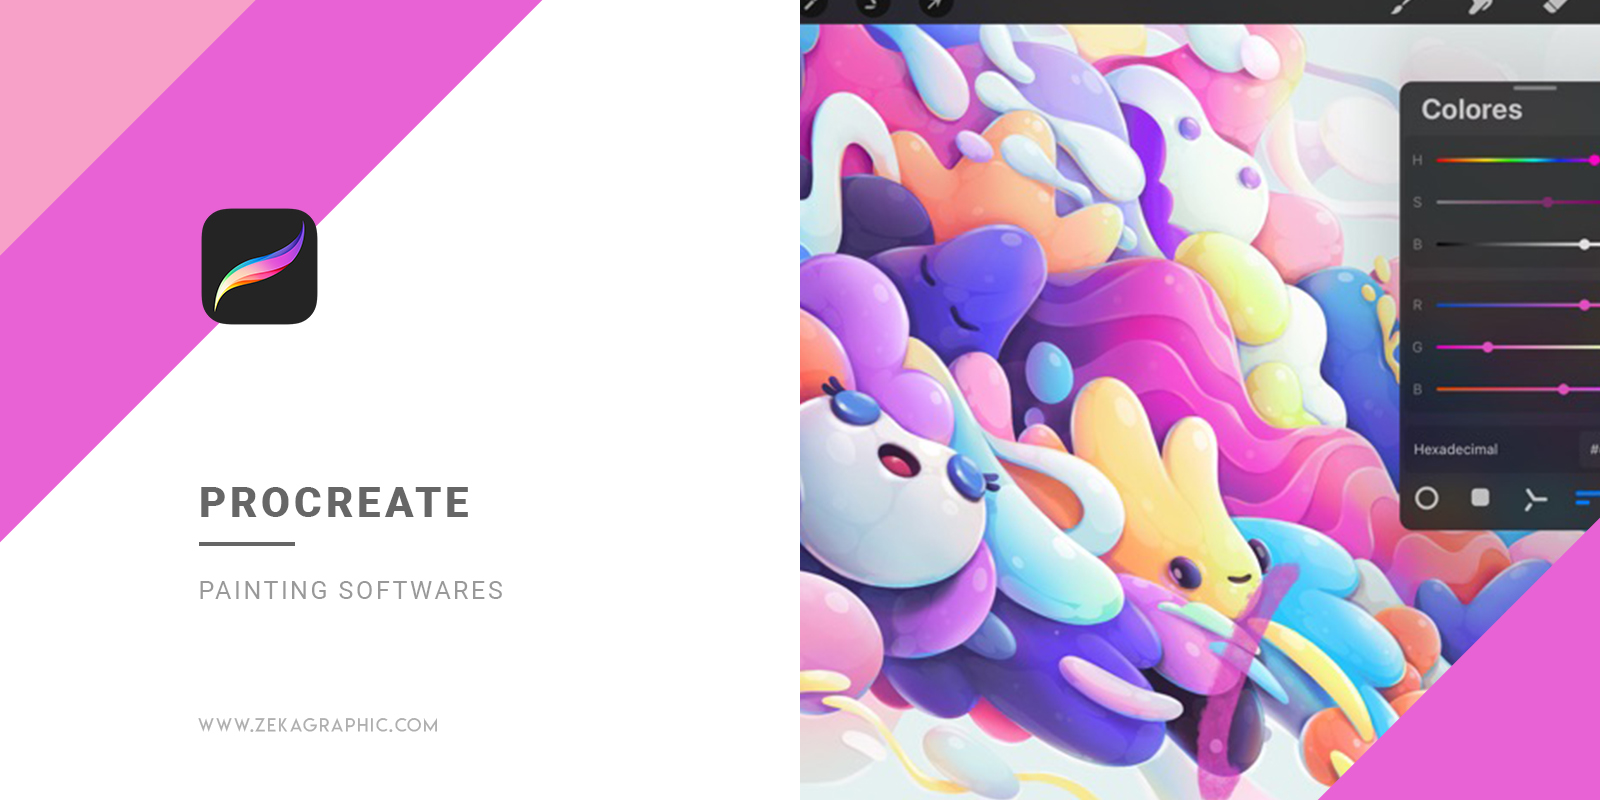 Procreate Best Painting Softwares for Illustrators and Graphic Design